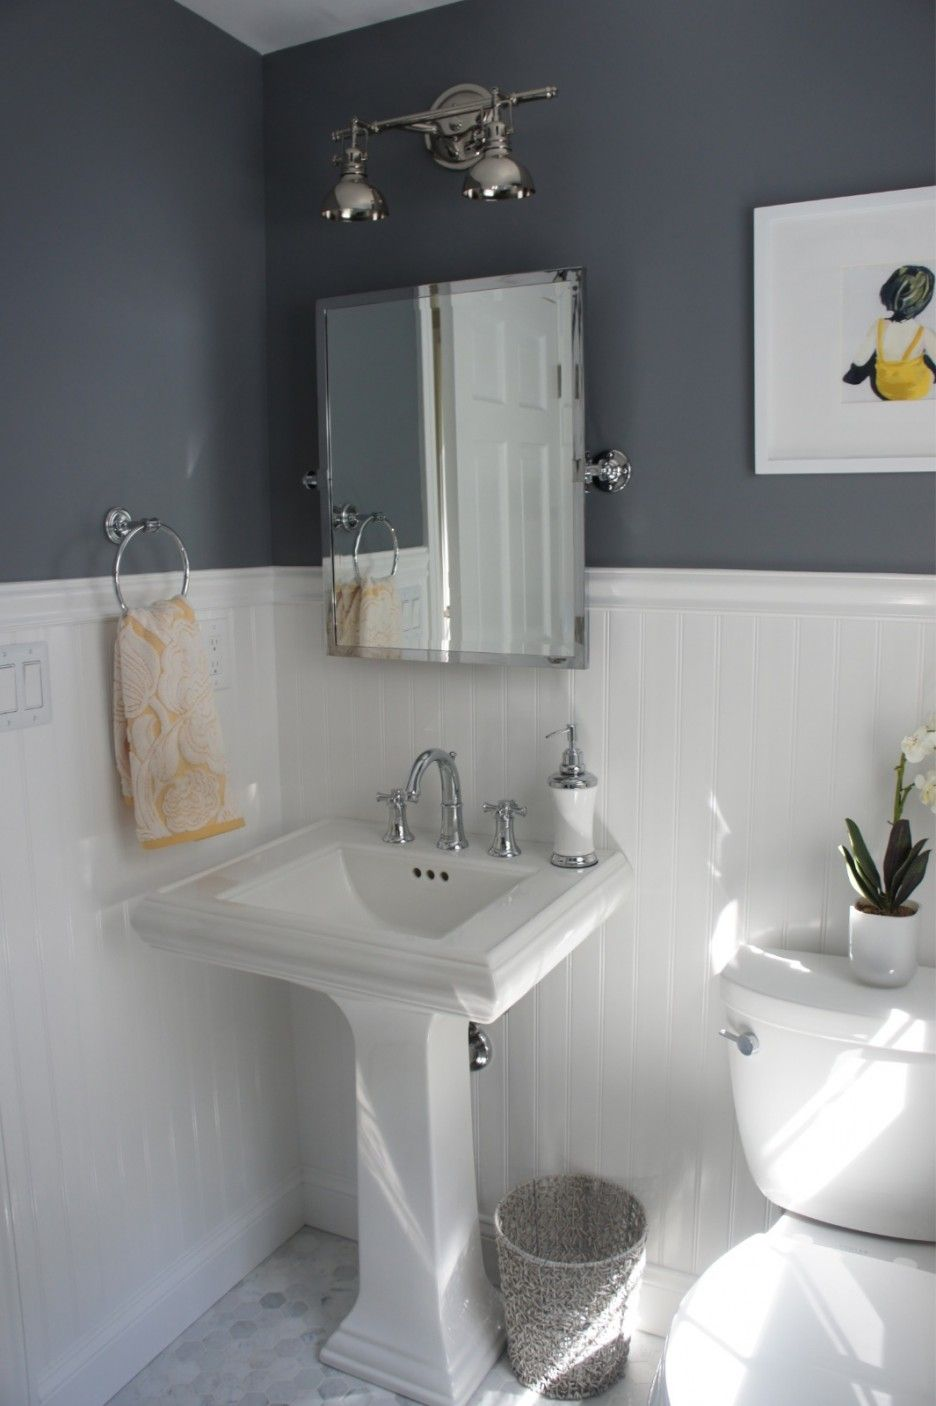 Captivating modern bathroom decorating ideas showcasing - Bathroom remodel ideas with wainscoting ...